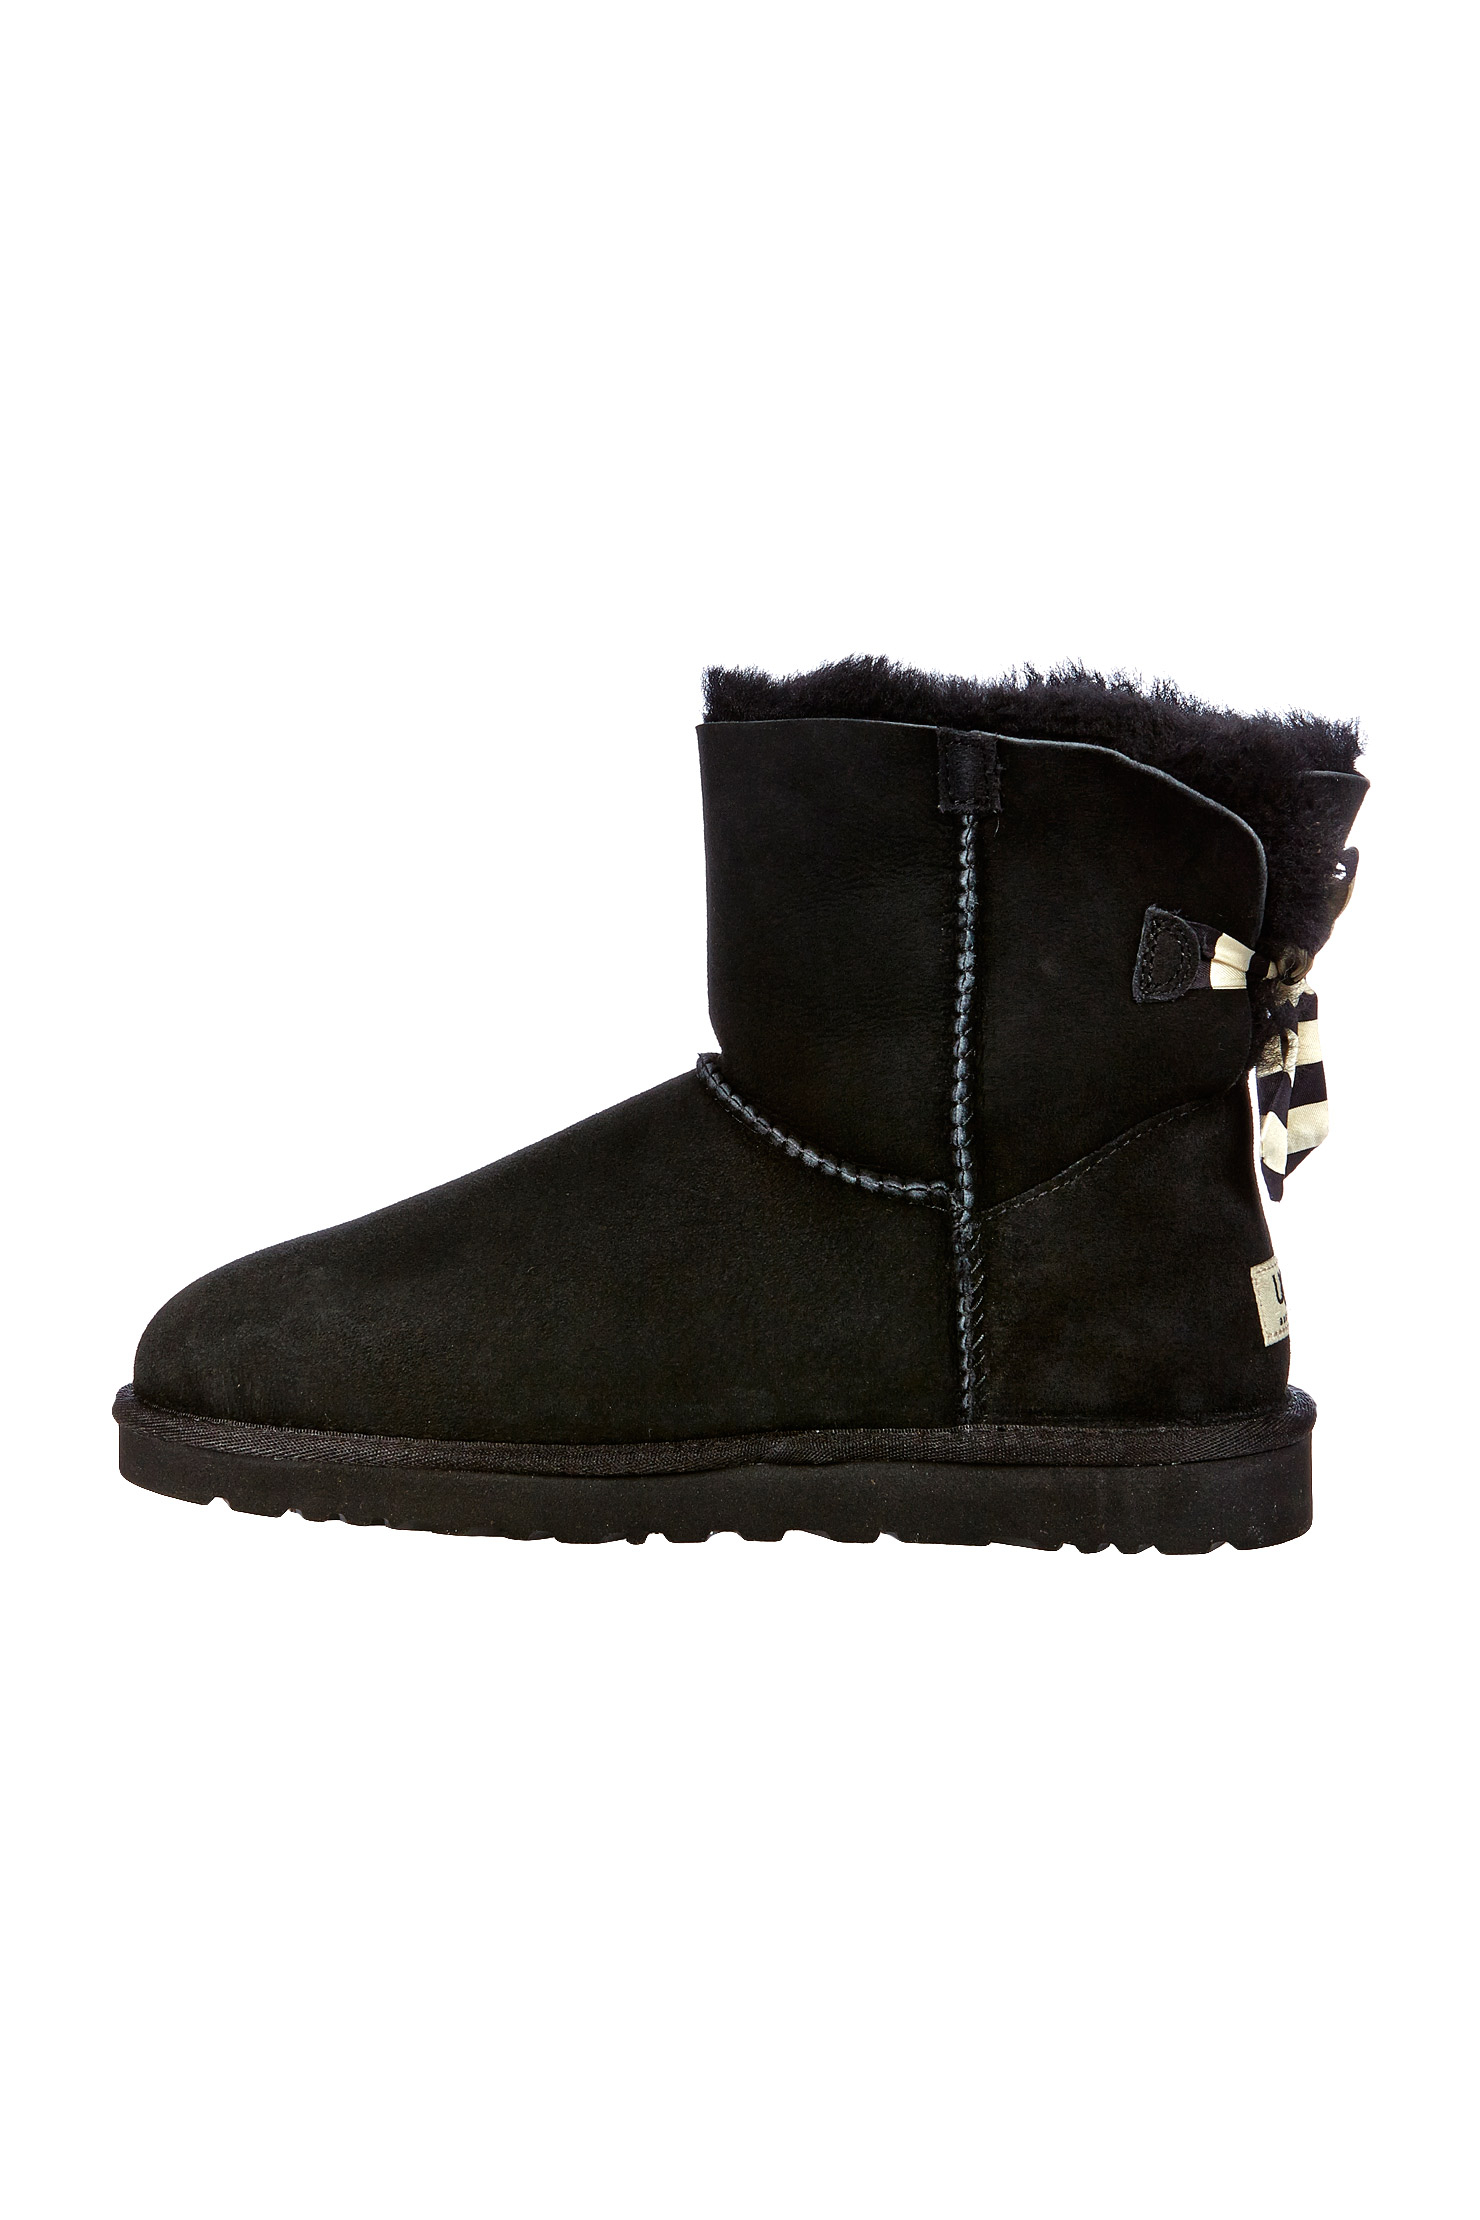 a82d0a3b45e Black Ugg With Bow - cheap watches mgc-gas.com